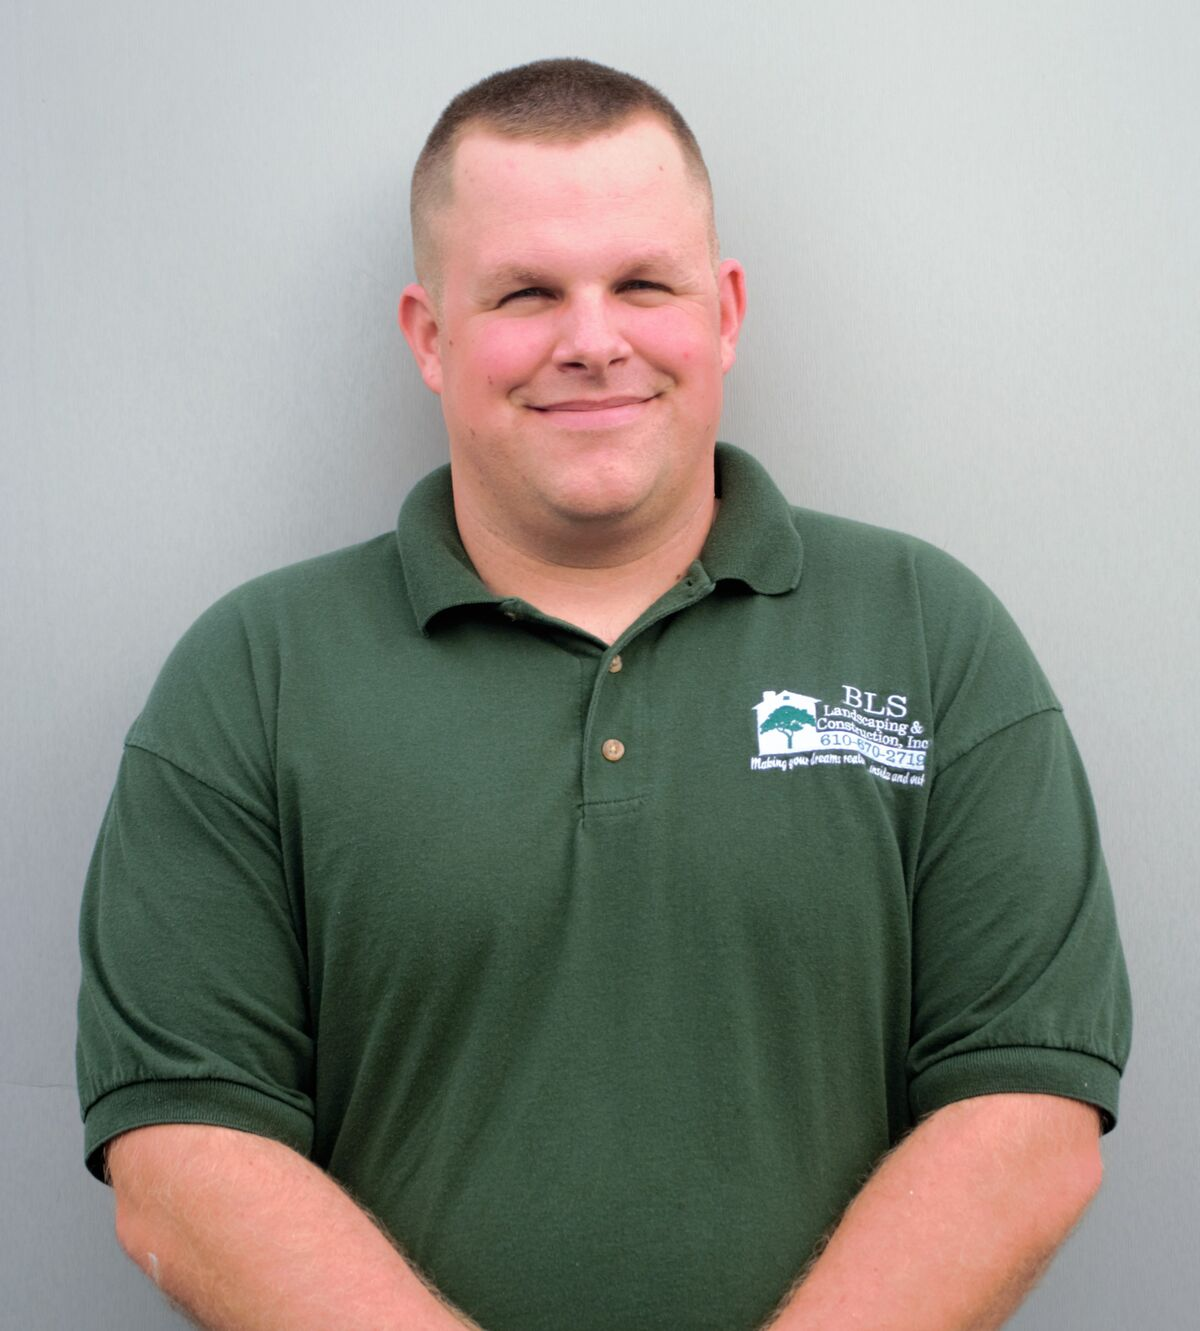 Avery Lesher - Construction Manager   Avery has been an integral part of the BLS team since the Spring of 2012. A Berks County native, Avery currently lives in Spring Township with his wife Kelsey, daughter Eva and black lab Gunner. In his free time, Avery enjoys hunting, fishing, and volunteering at the Western Berks Fire Department where is he a Deputy Chief.